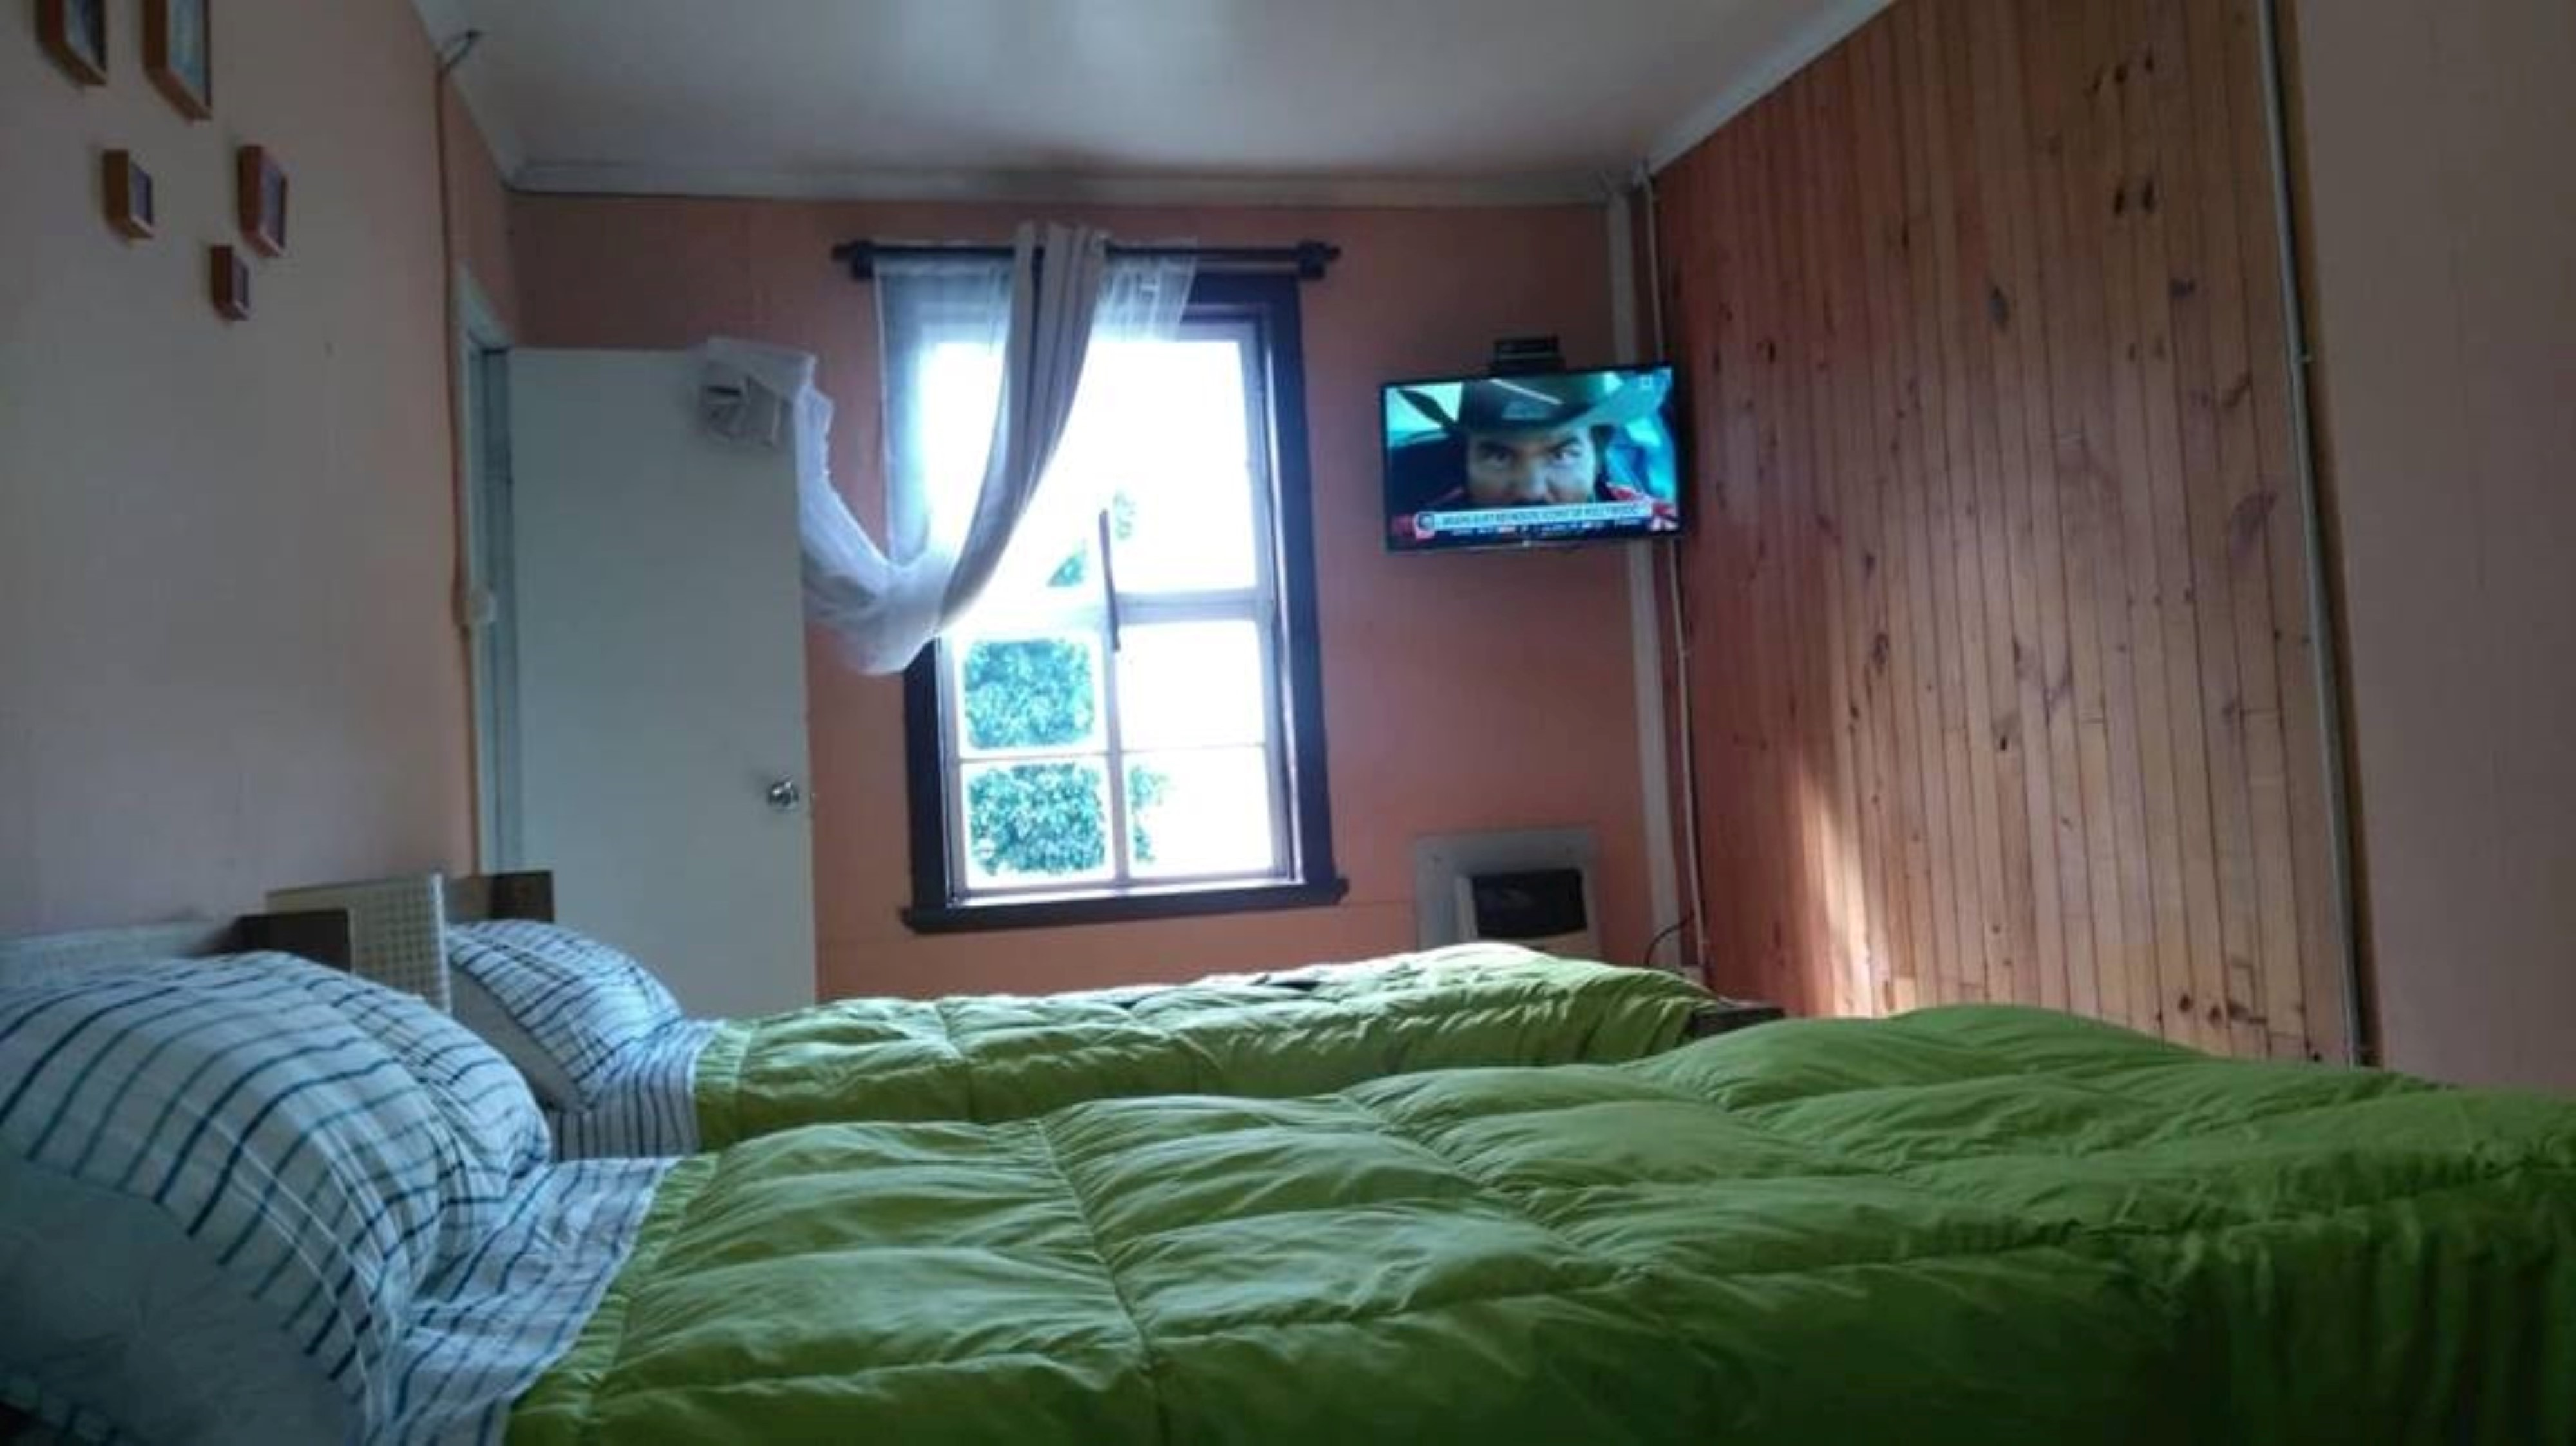 Hostal Chamiza, Forests and a unique Tranquility 10 minutes from Puerto Montt